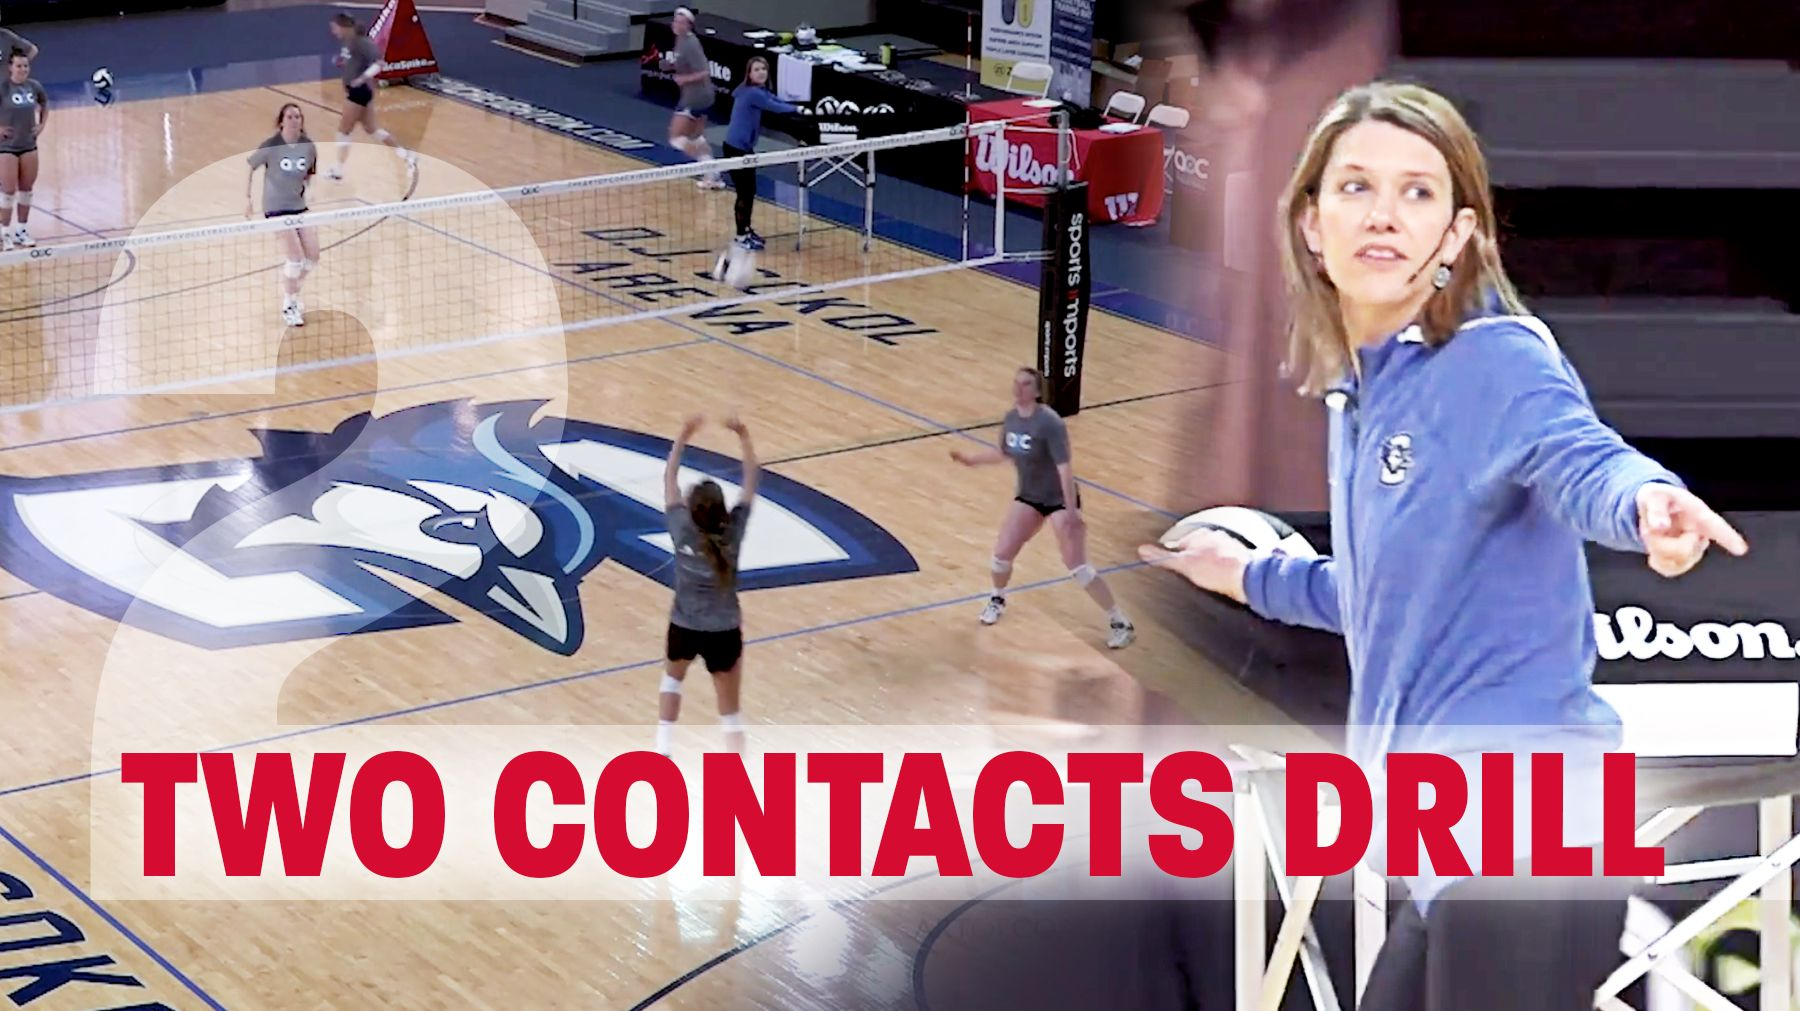 Small Group Drill Two Contacts Coaching Volleyball Volleyball Training Volleyball Practice